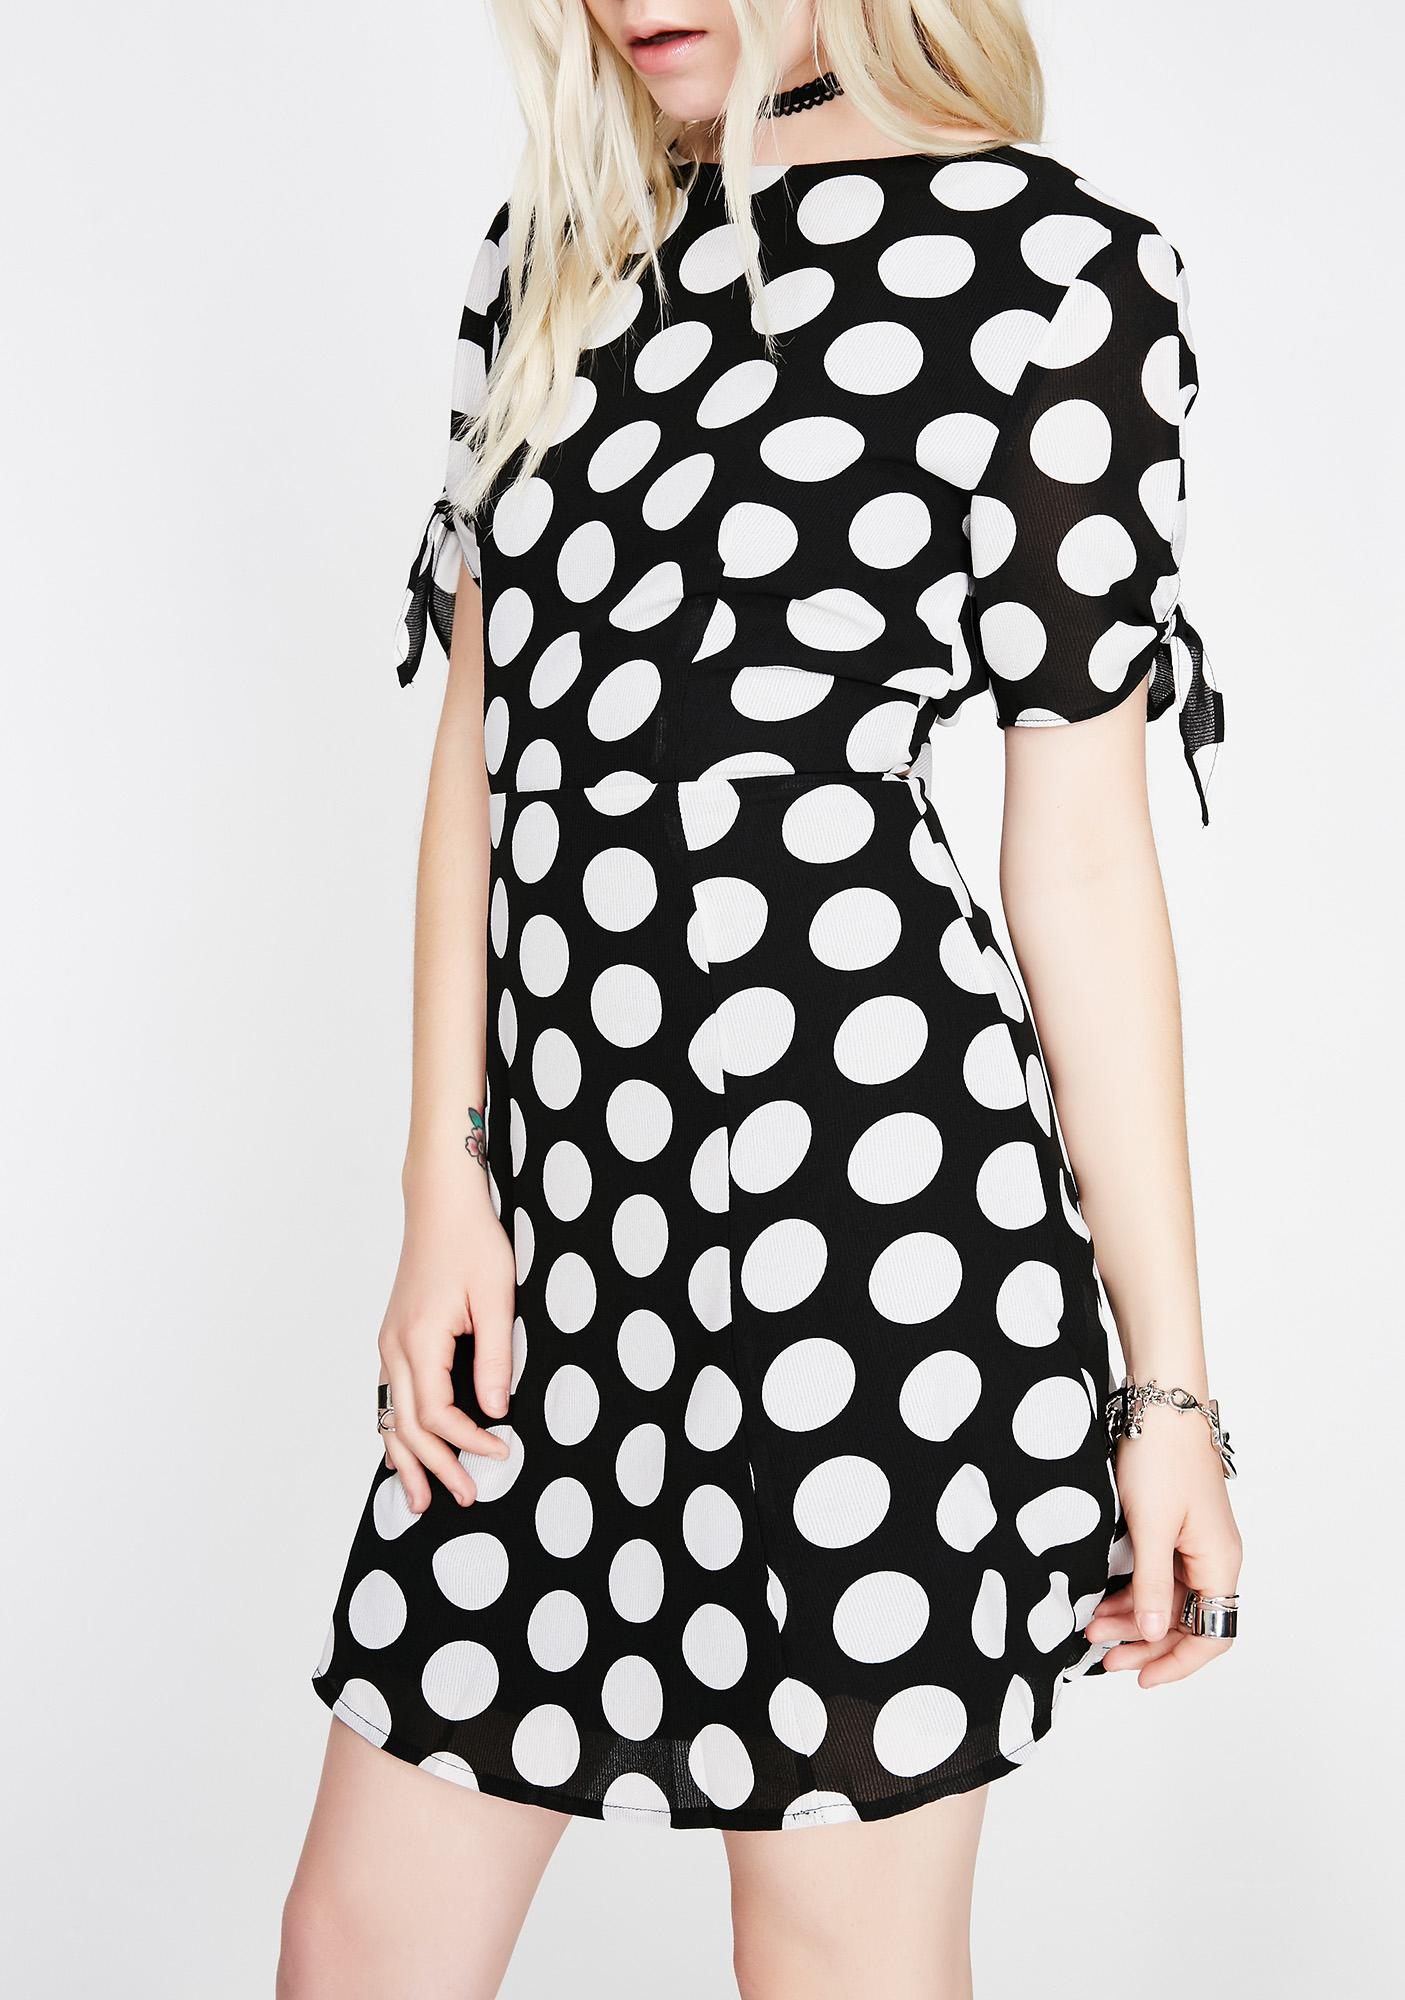 Got The Tea Polka Dot Dress